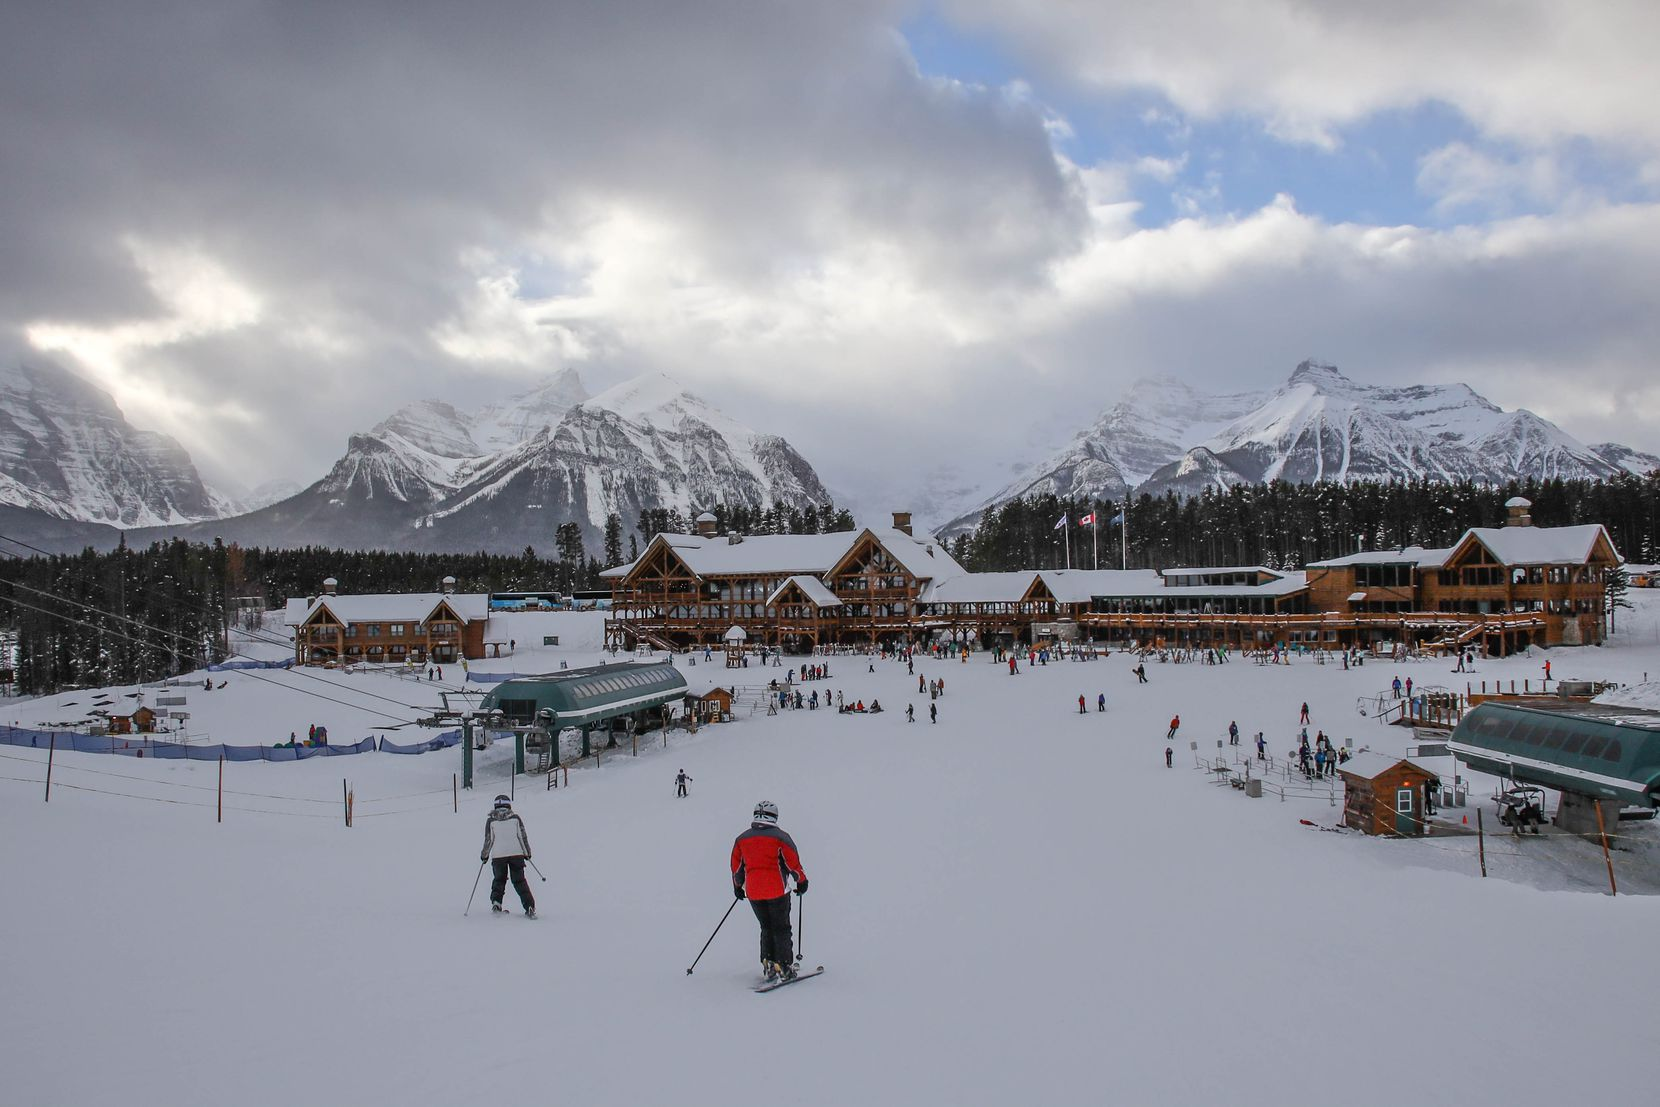 Lake Louise Ski Resort is one of three major ski resorts in Banff National Park.